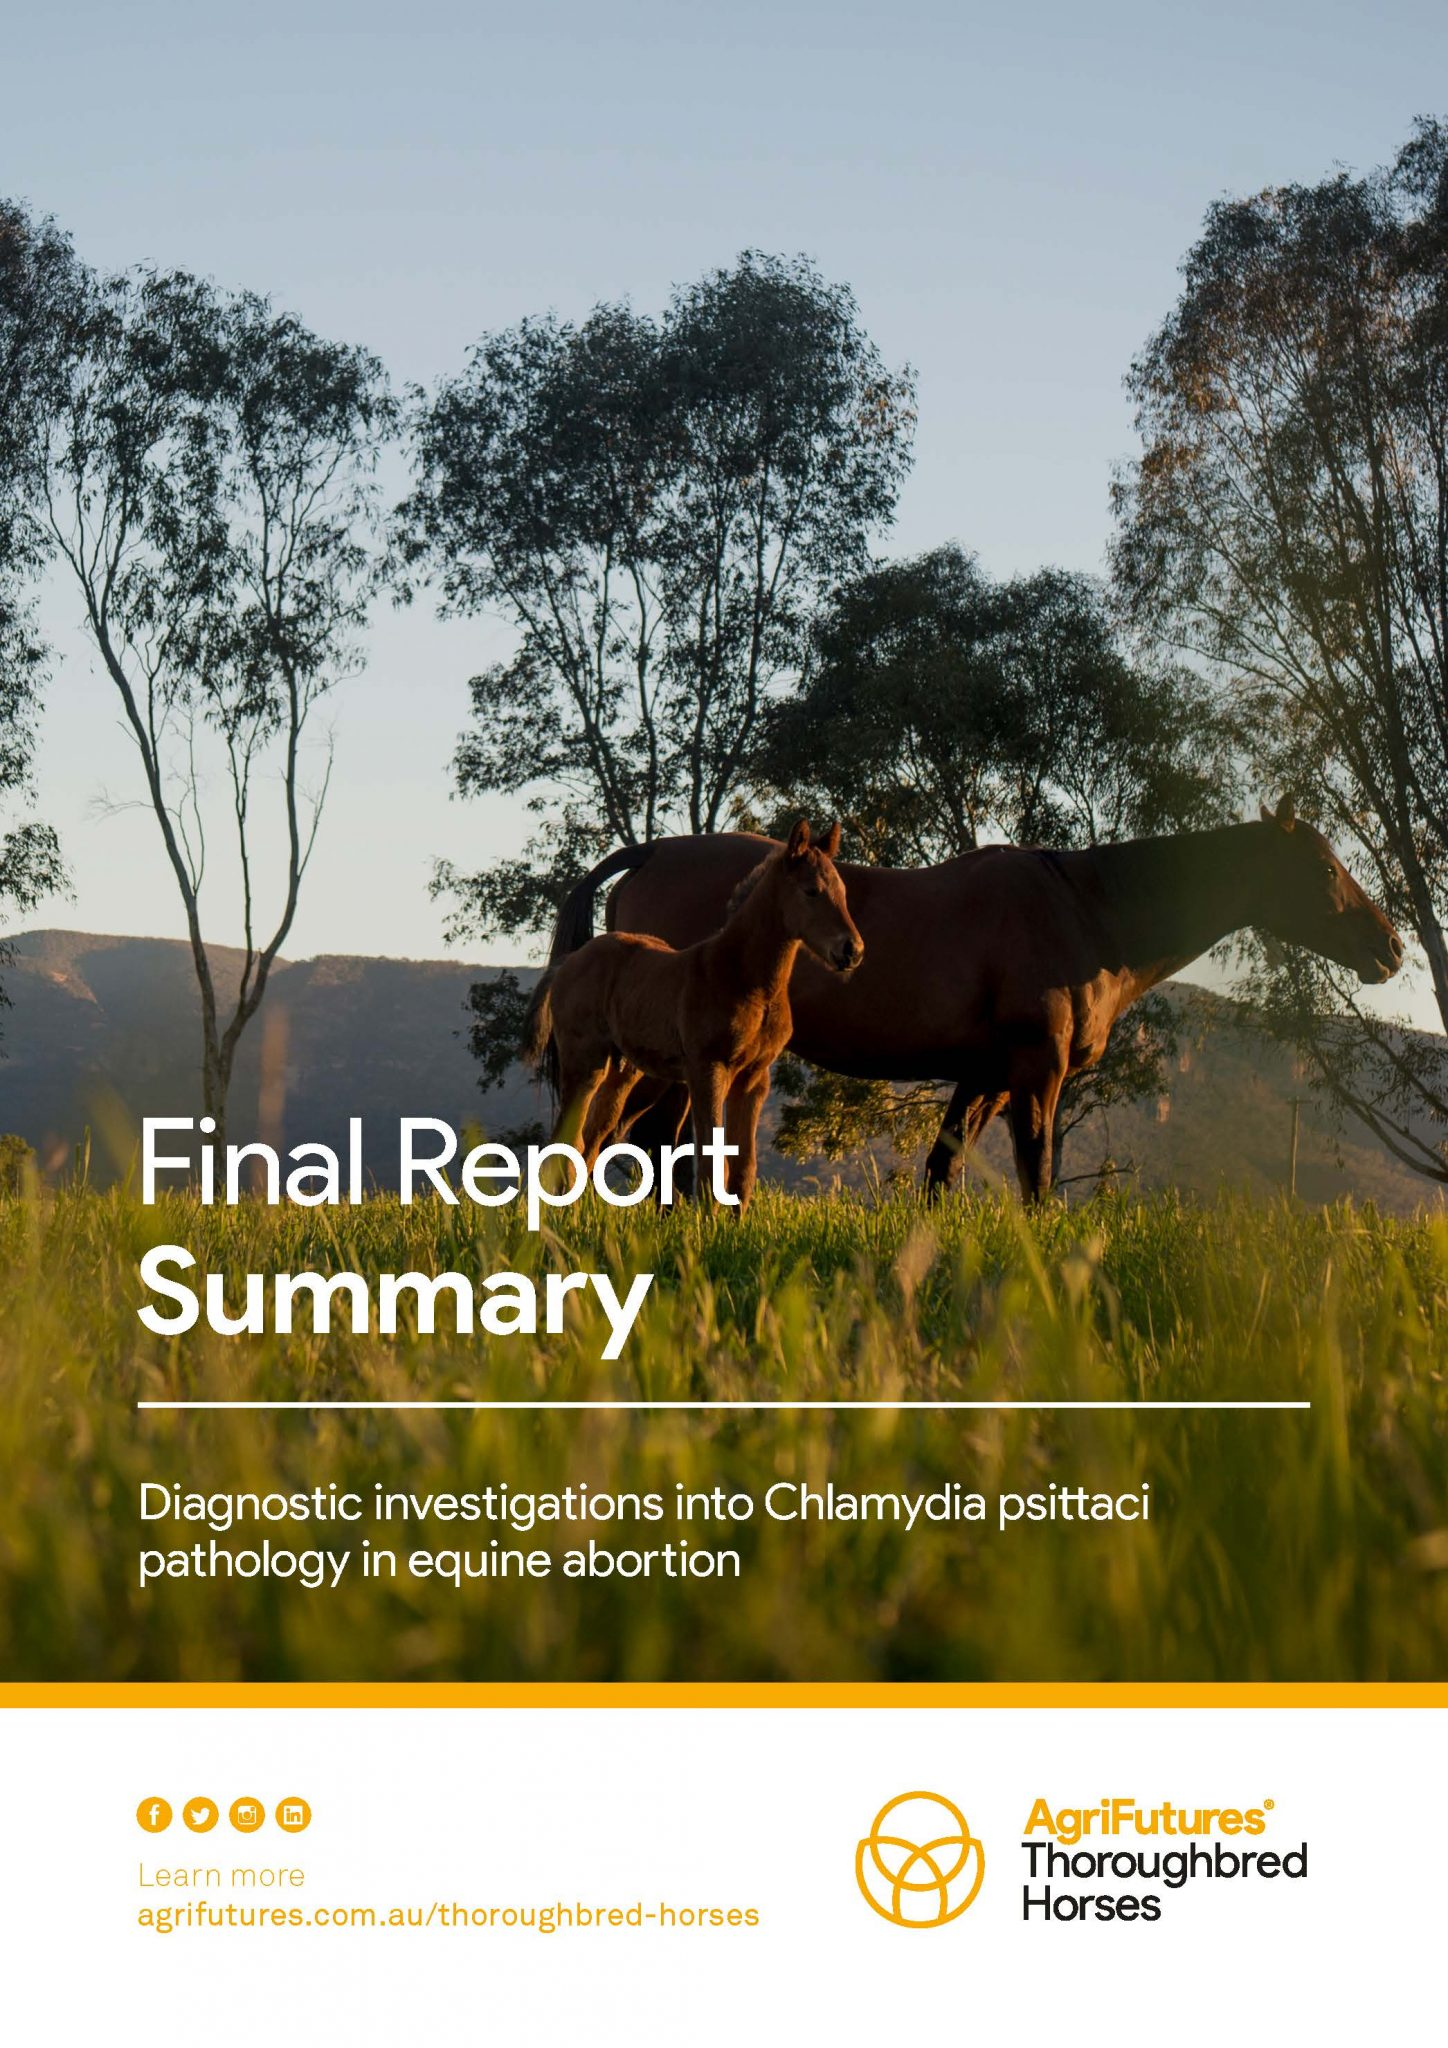 Final Report Summary: Diagnostic investigations into Chlamydia psittaci pathology in equine abortion - image